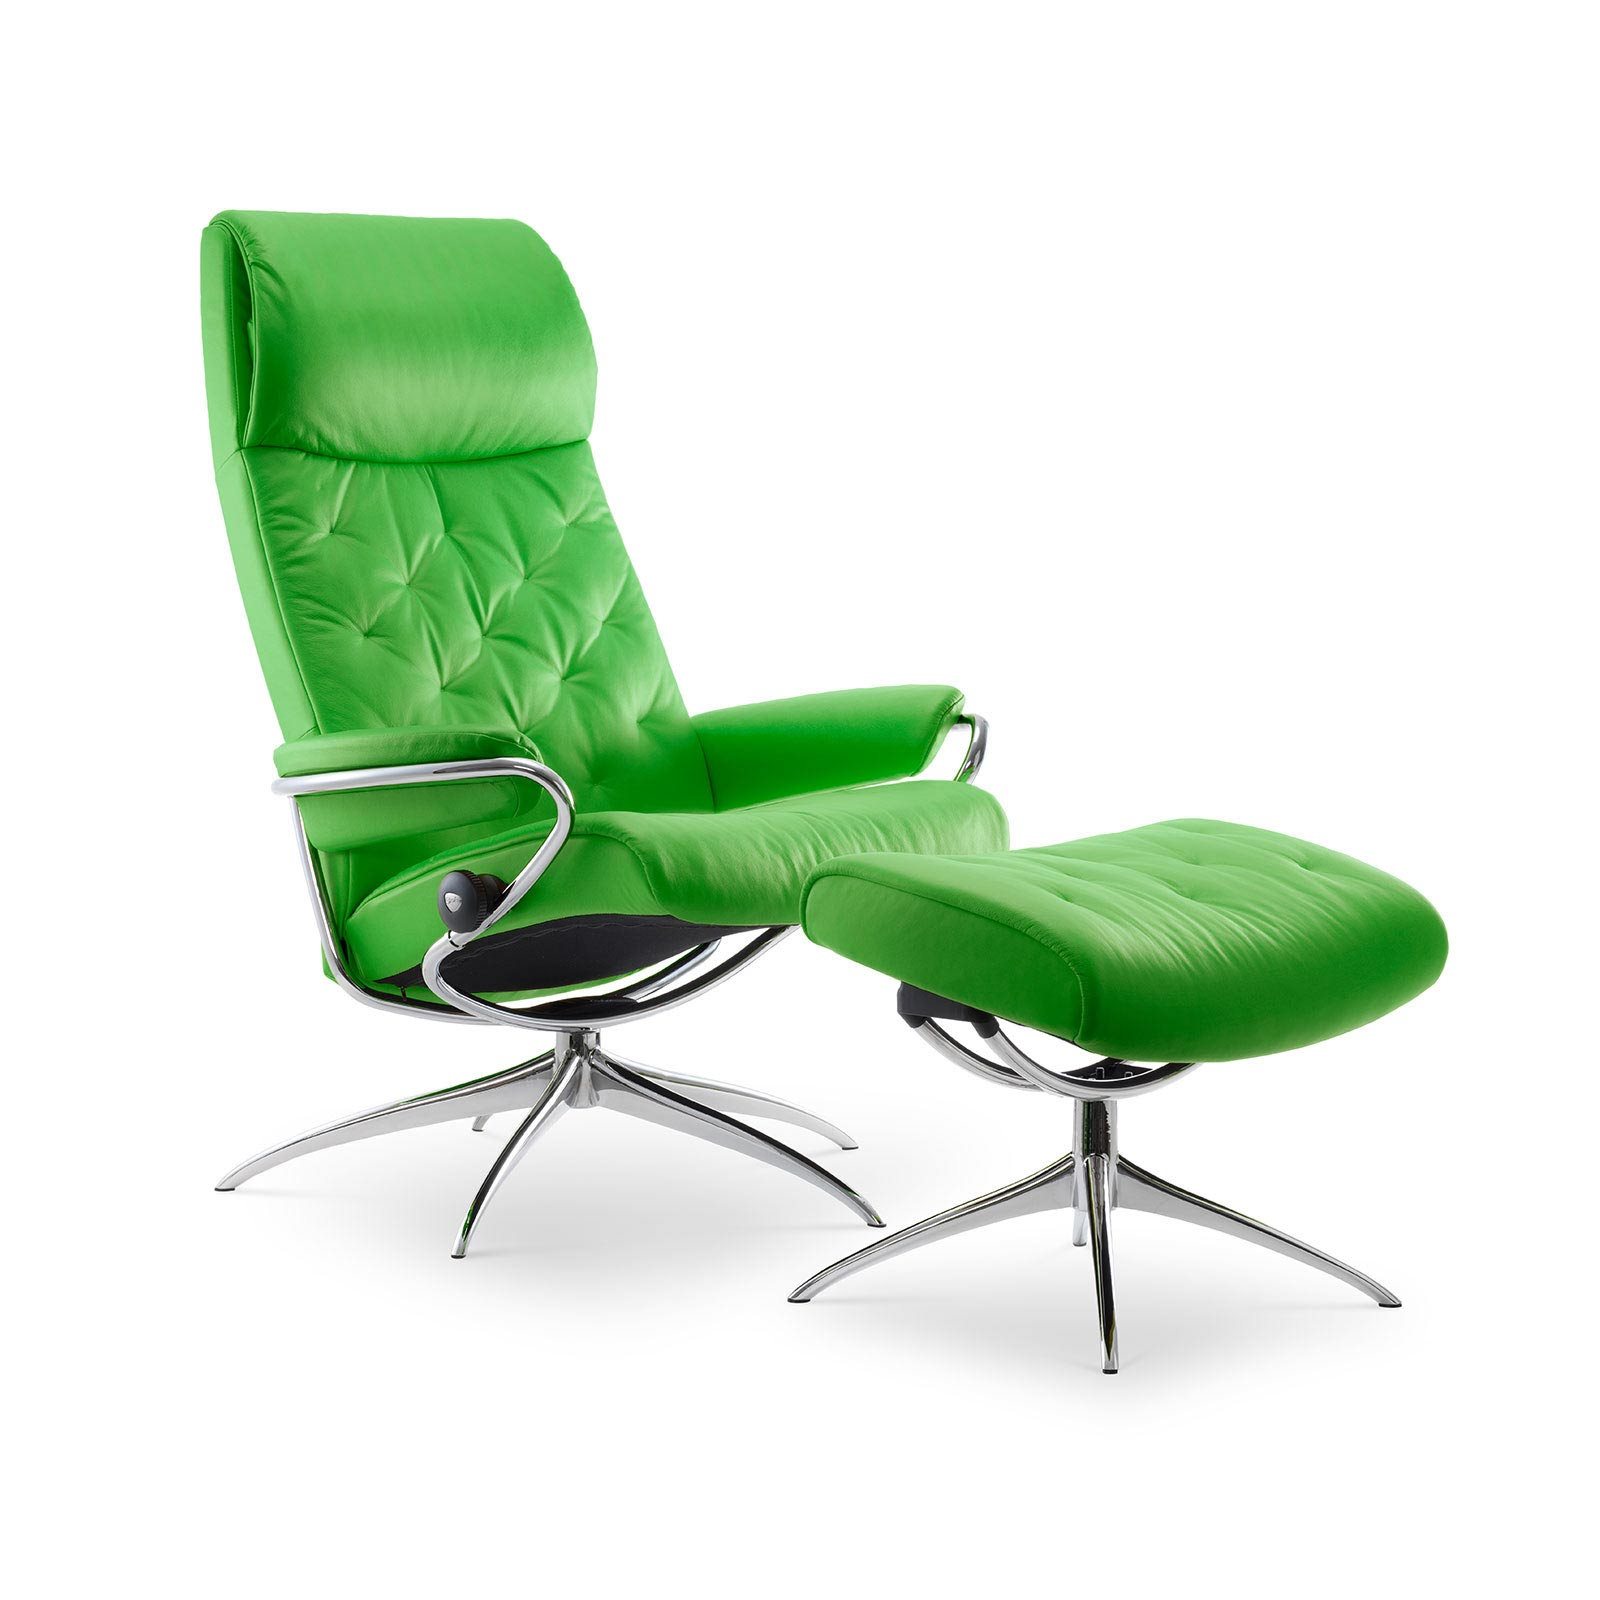 Summer Casual Geflecht Relax-sessel Stressless Metro High Back Paloma Summer Green Gestell